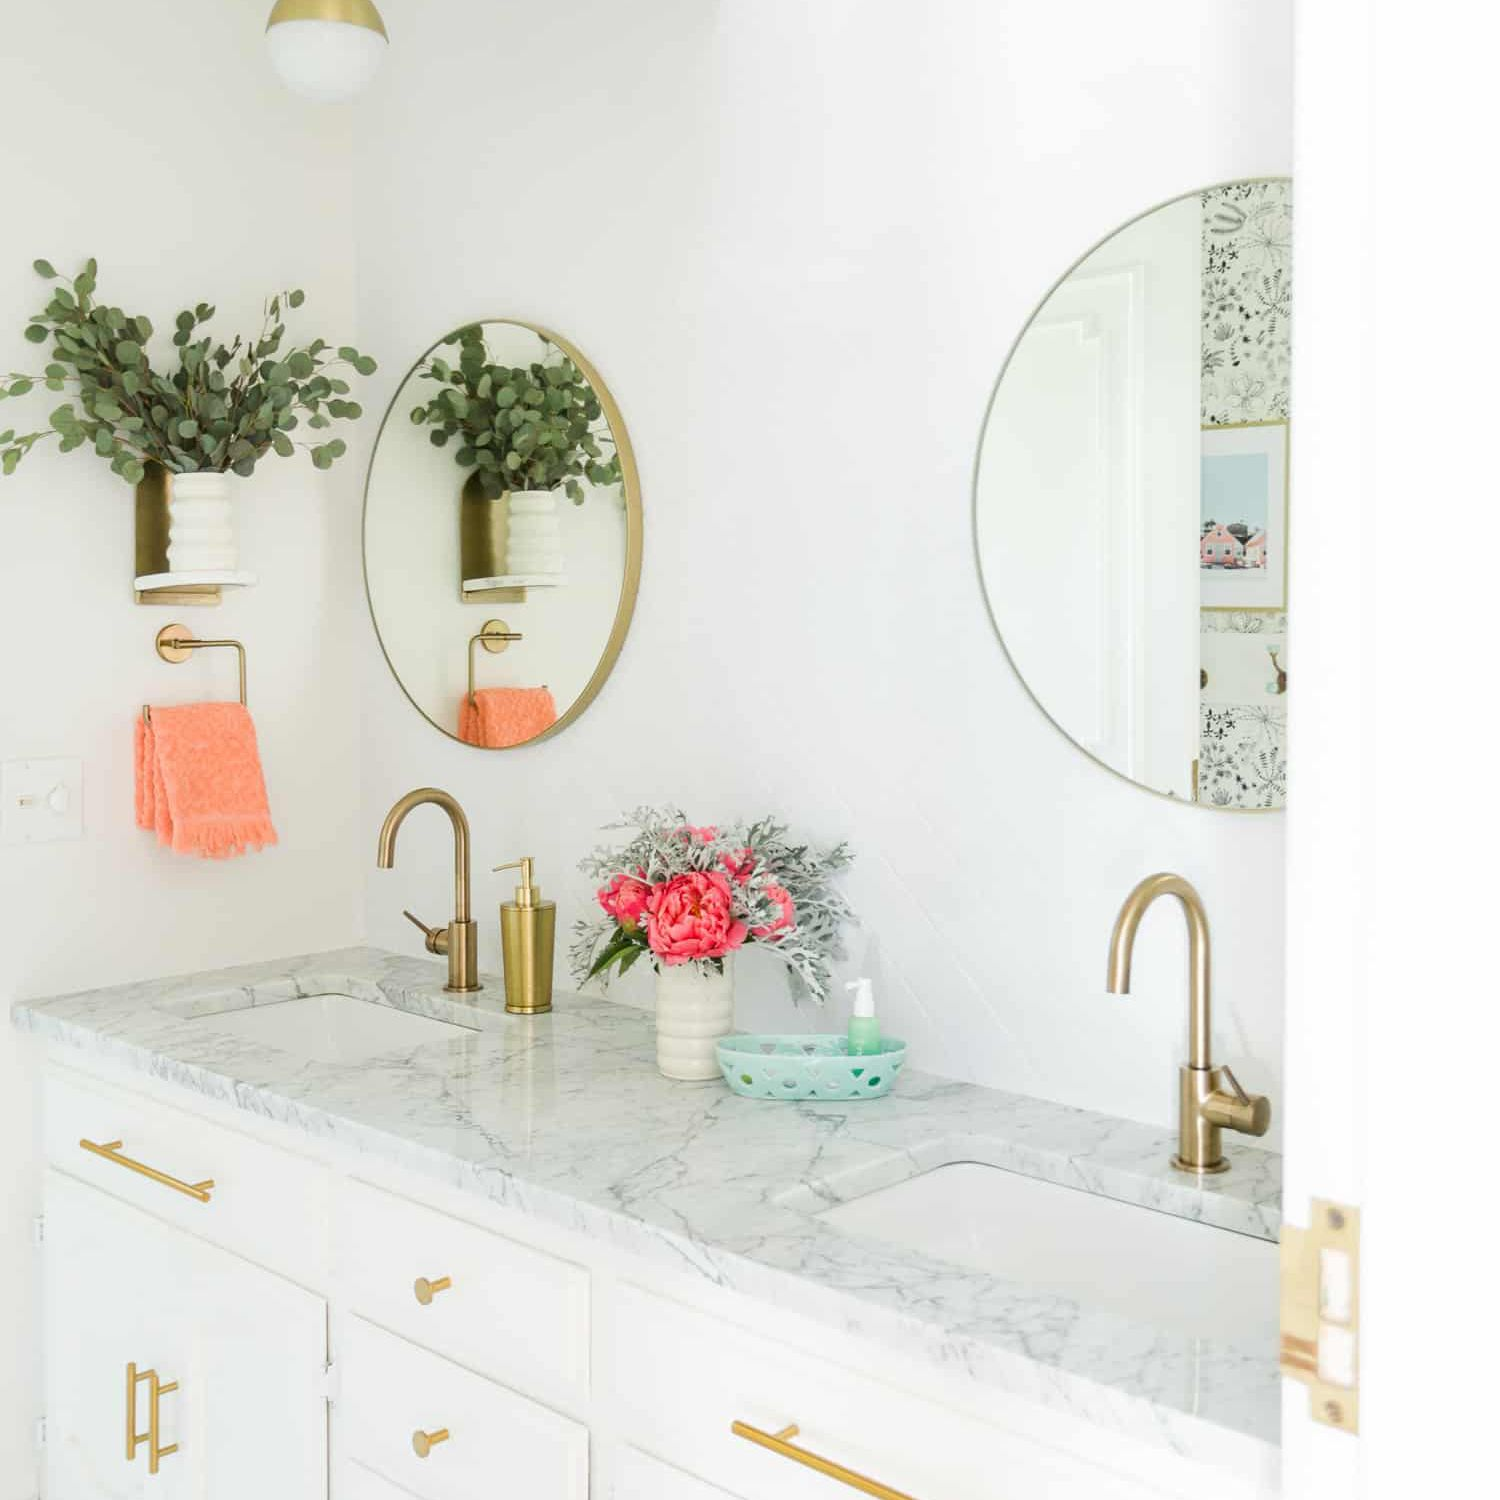 Bathroom with gold vanity and peach details